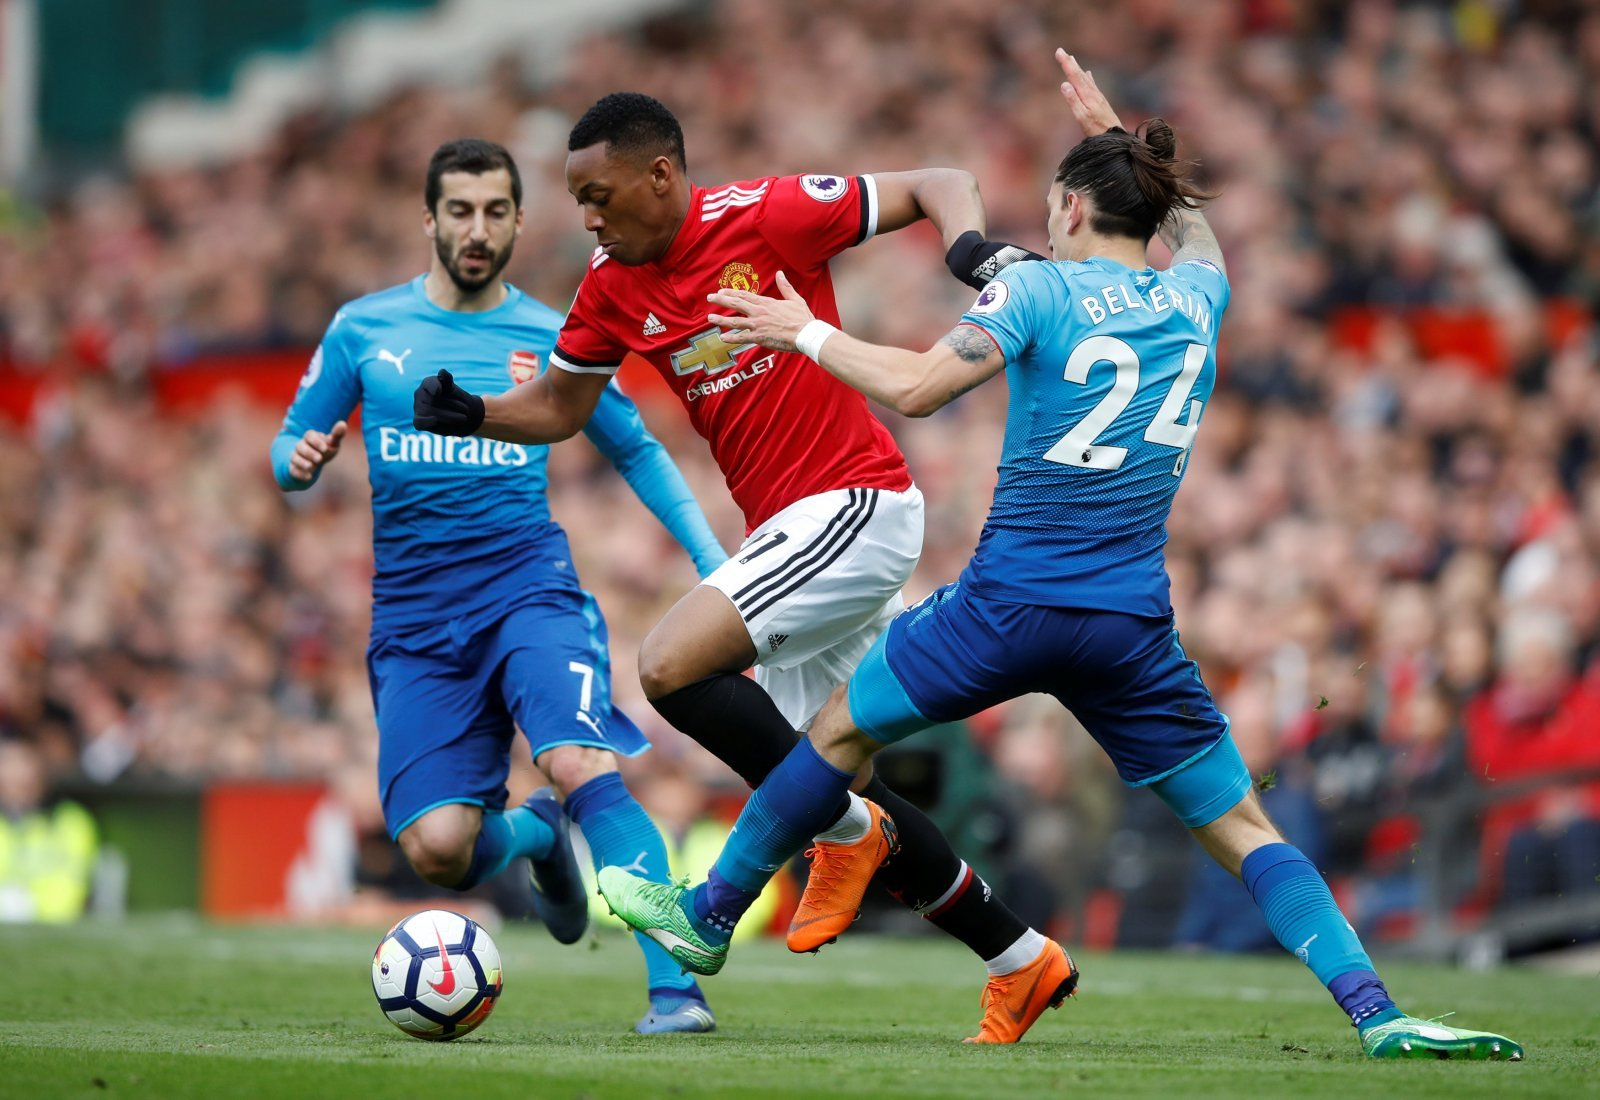 Anthony Martial could become even better than Eden Hazard at Chelsea